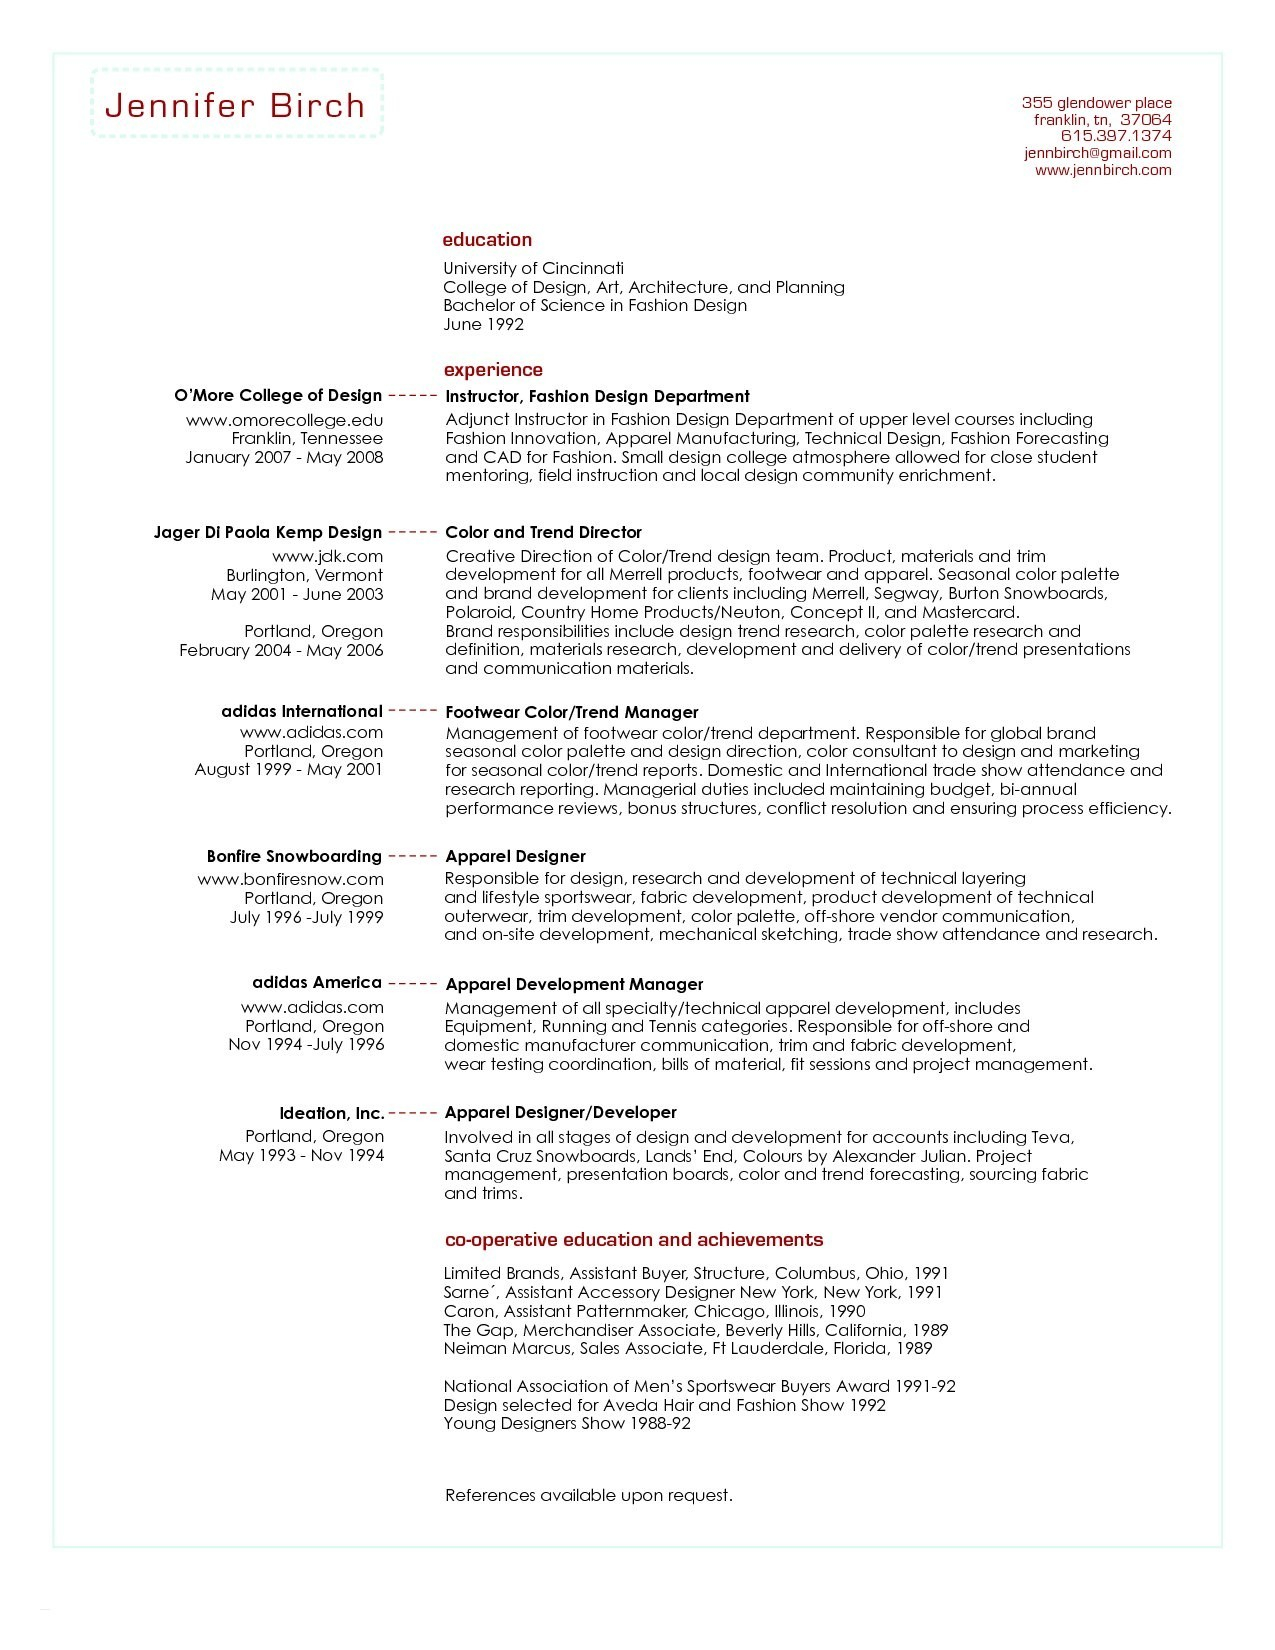 Store Manager Resume Template - Sample Sales Management Resume New Retail Store Manager Resume Best